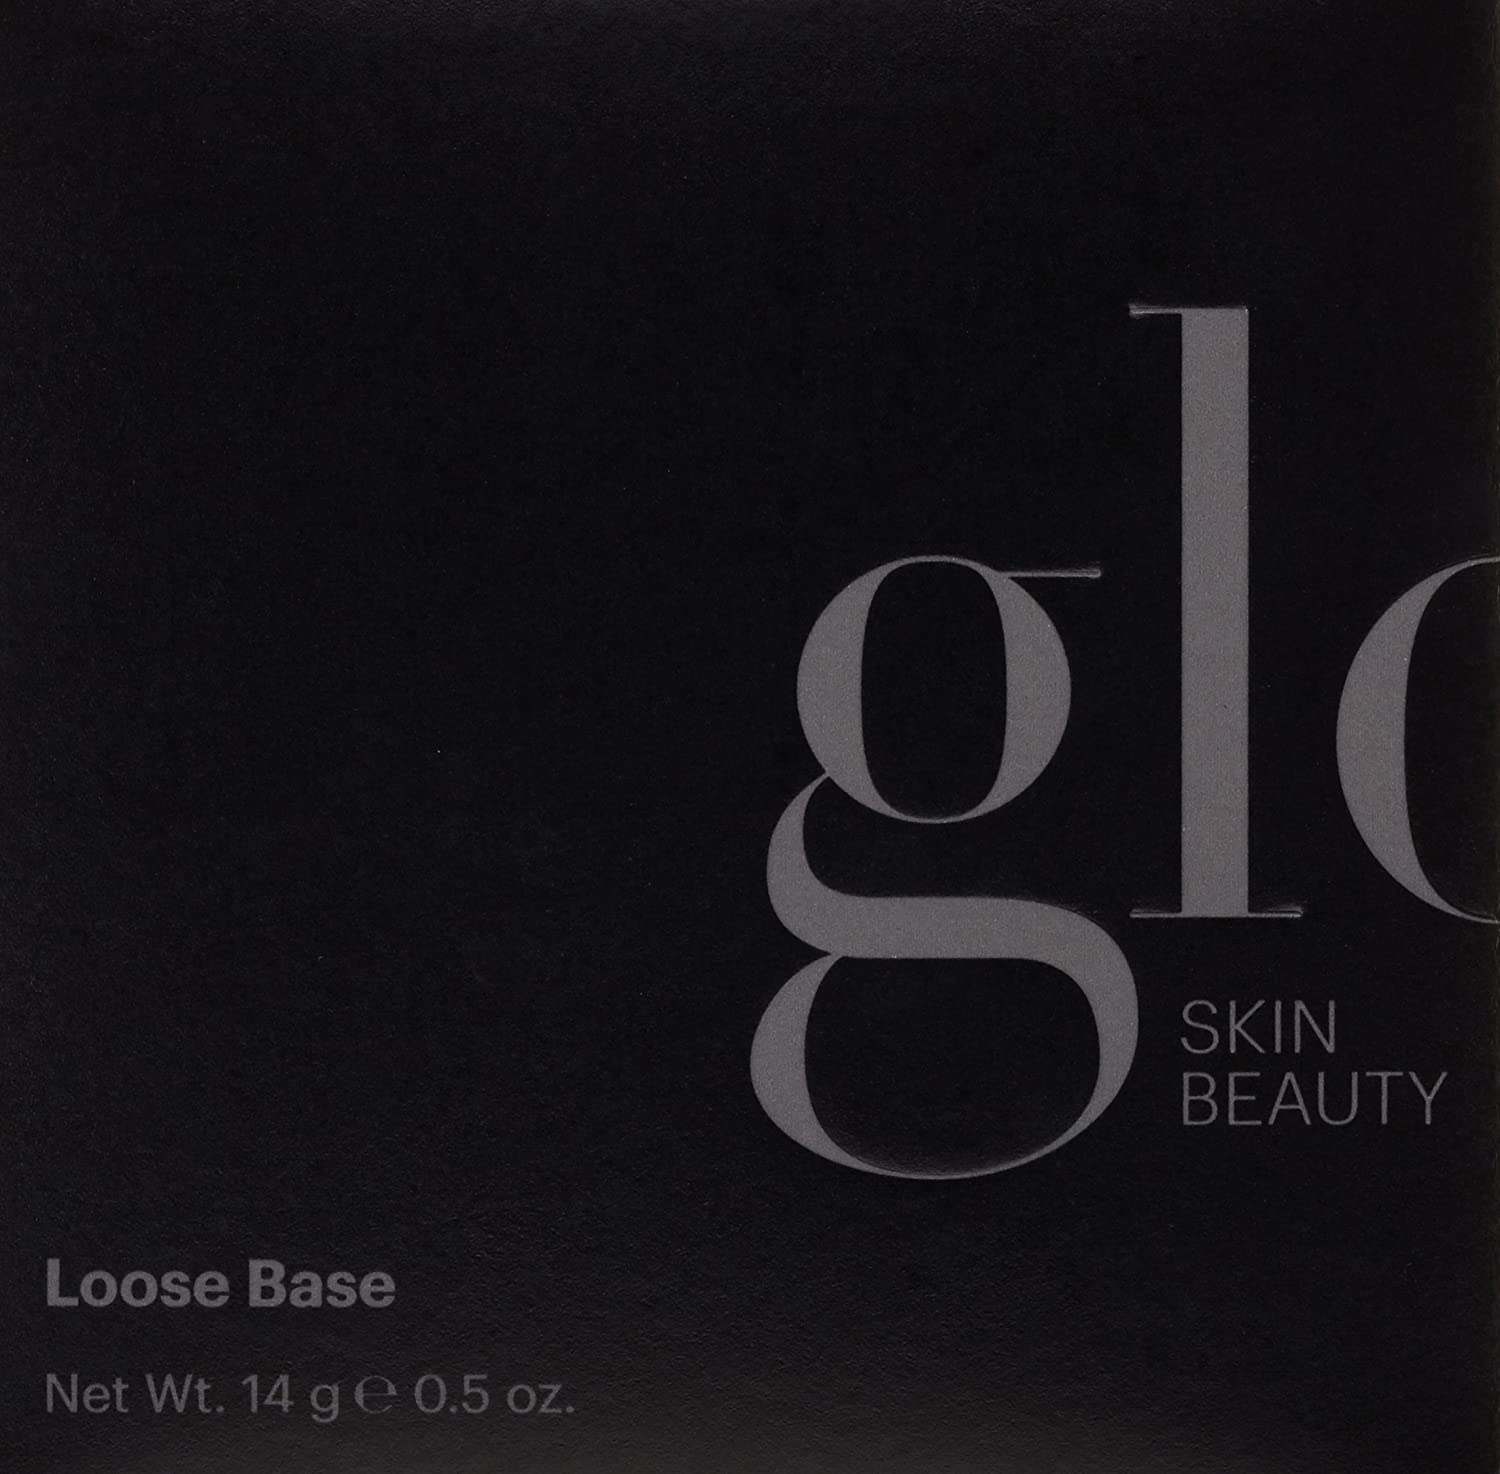 Glo Skin Beauty Loose Base Illuminating Loose Mineral Makeup Powder Foundation Dewy Finish 9 Shades